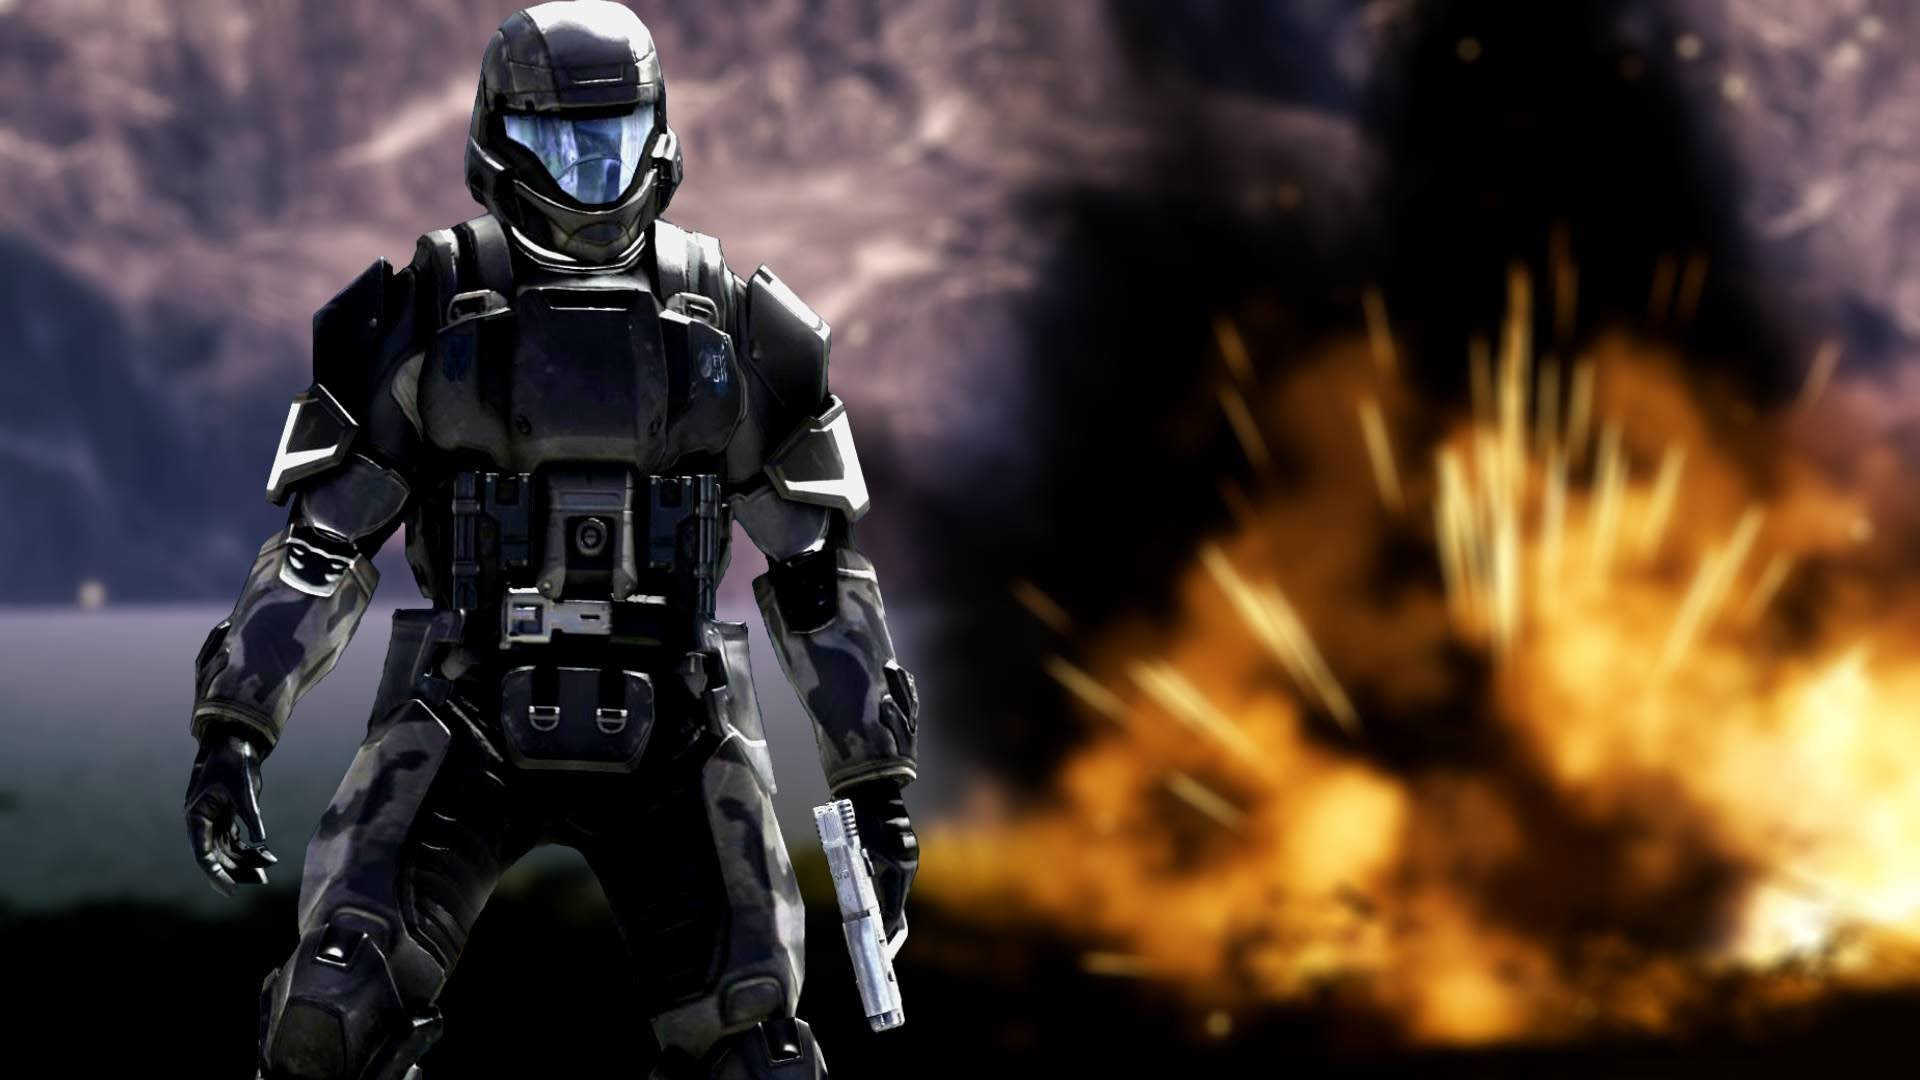 1920x1080 Halo 4 Master Chief Wallpaper High Quality